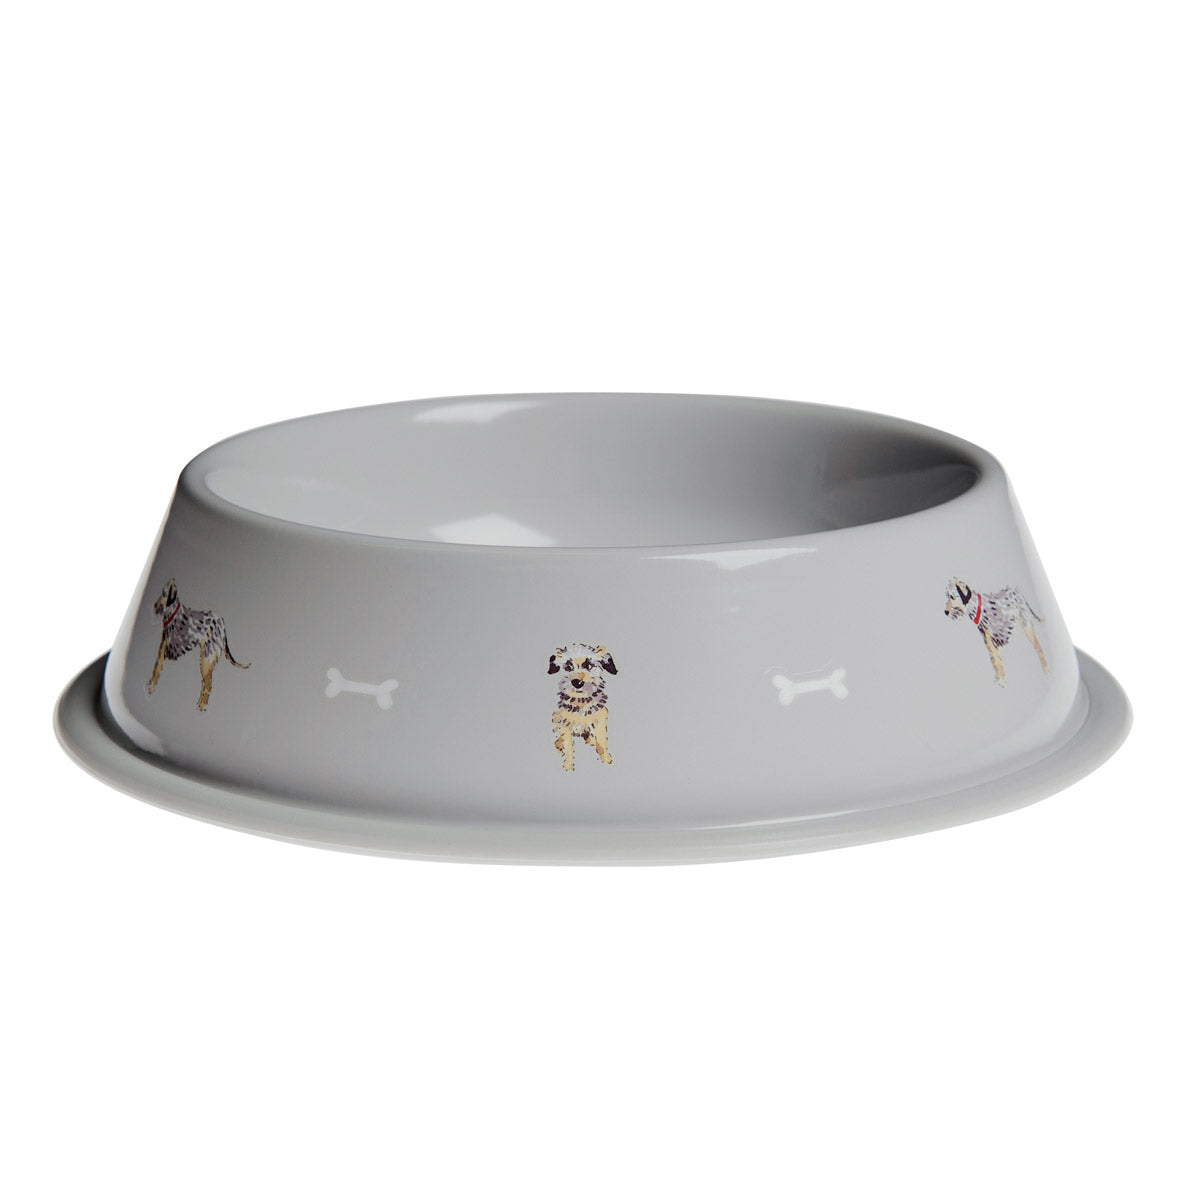 terrier dog bowl